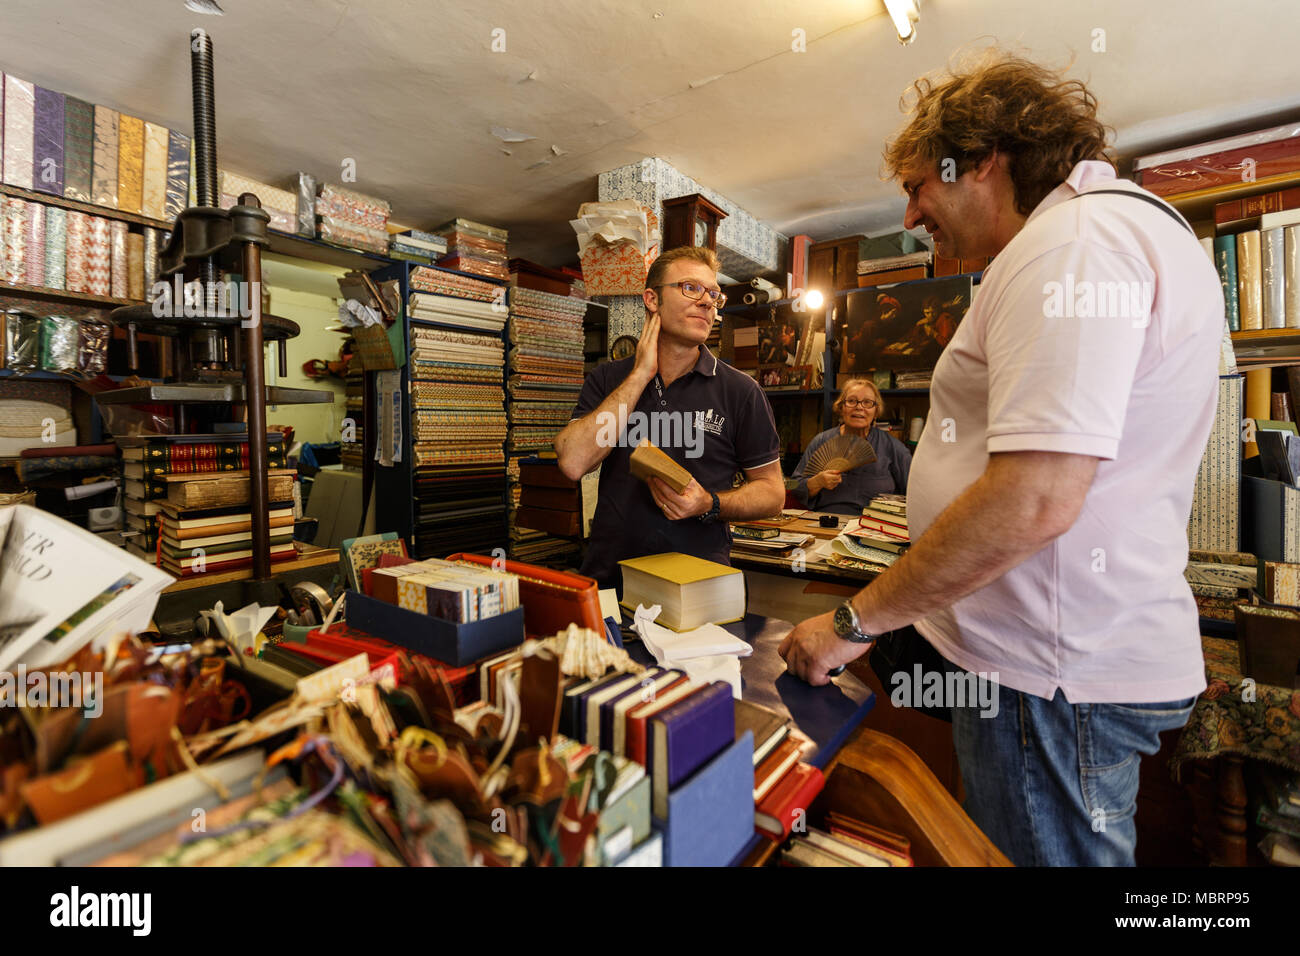 The owner and visitor are kindly discussing the restoration of books. Venice - Stock Image